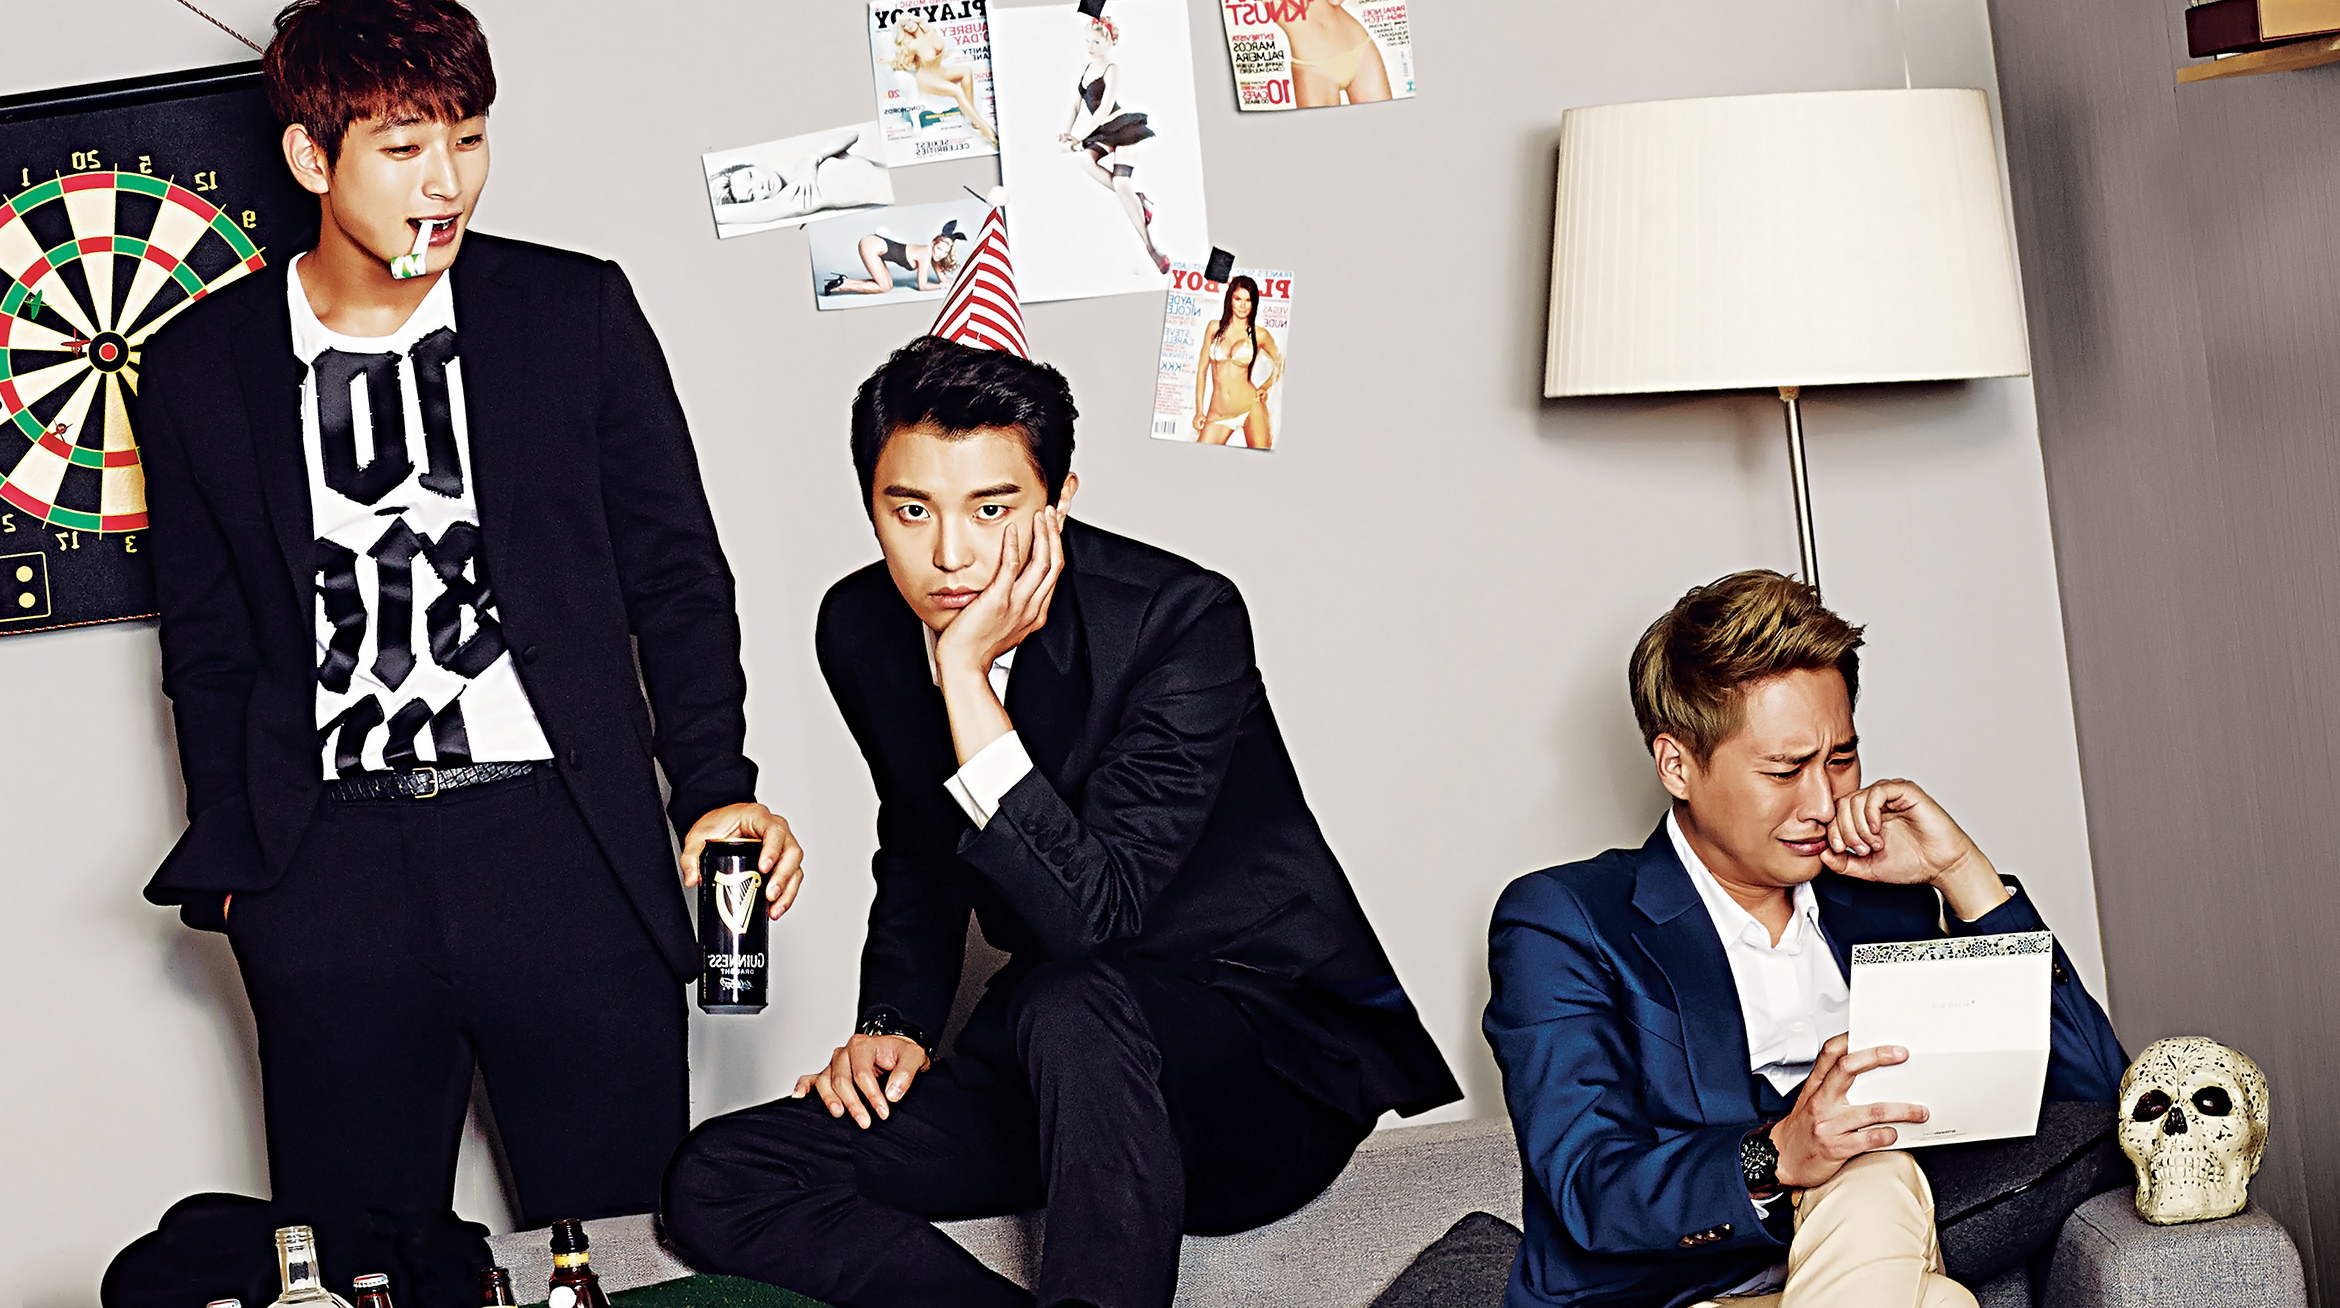 marriage not dating wallpaper